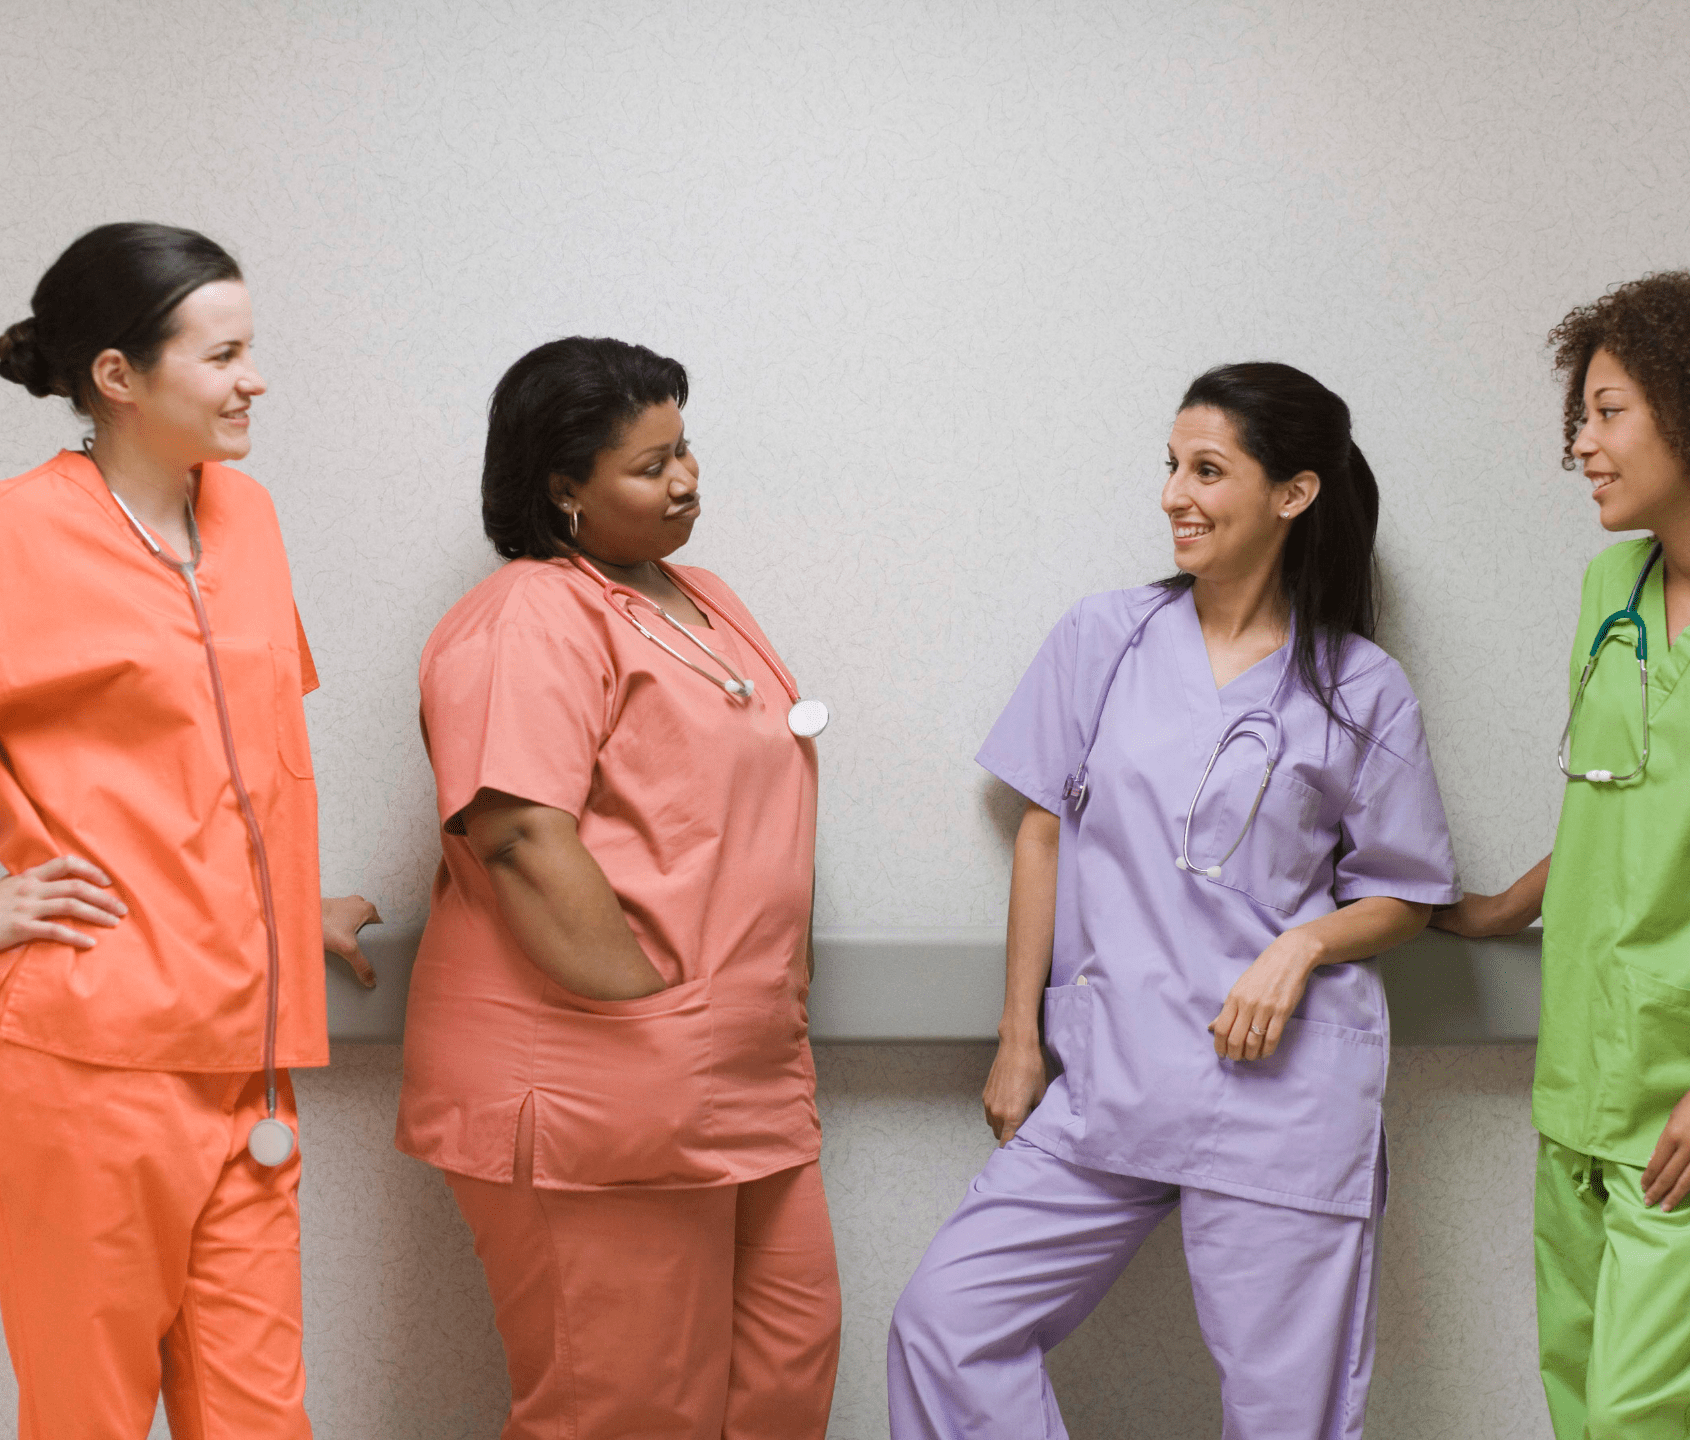 """""""Nursing in a box"""": A deeper dive into the experience of nurses working in eating disorder treatment"""